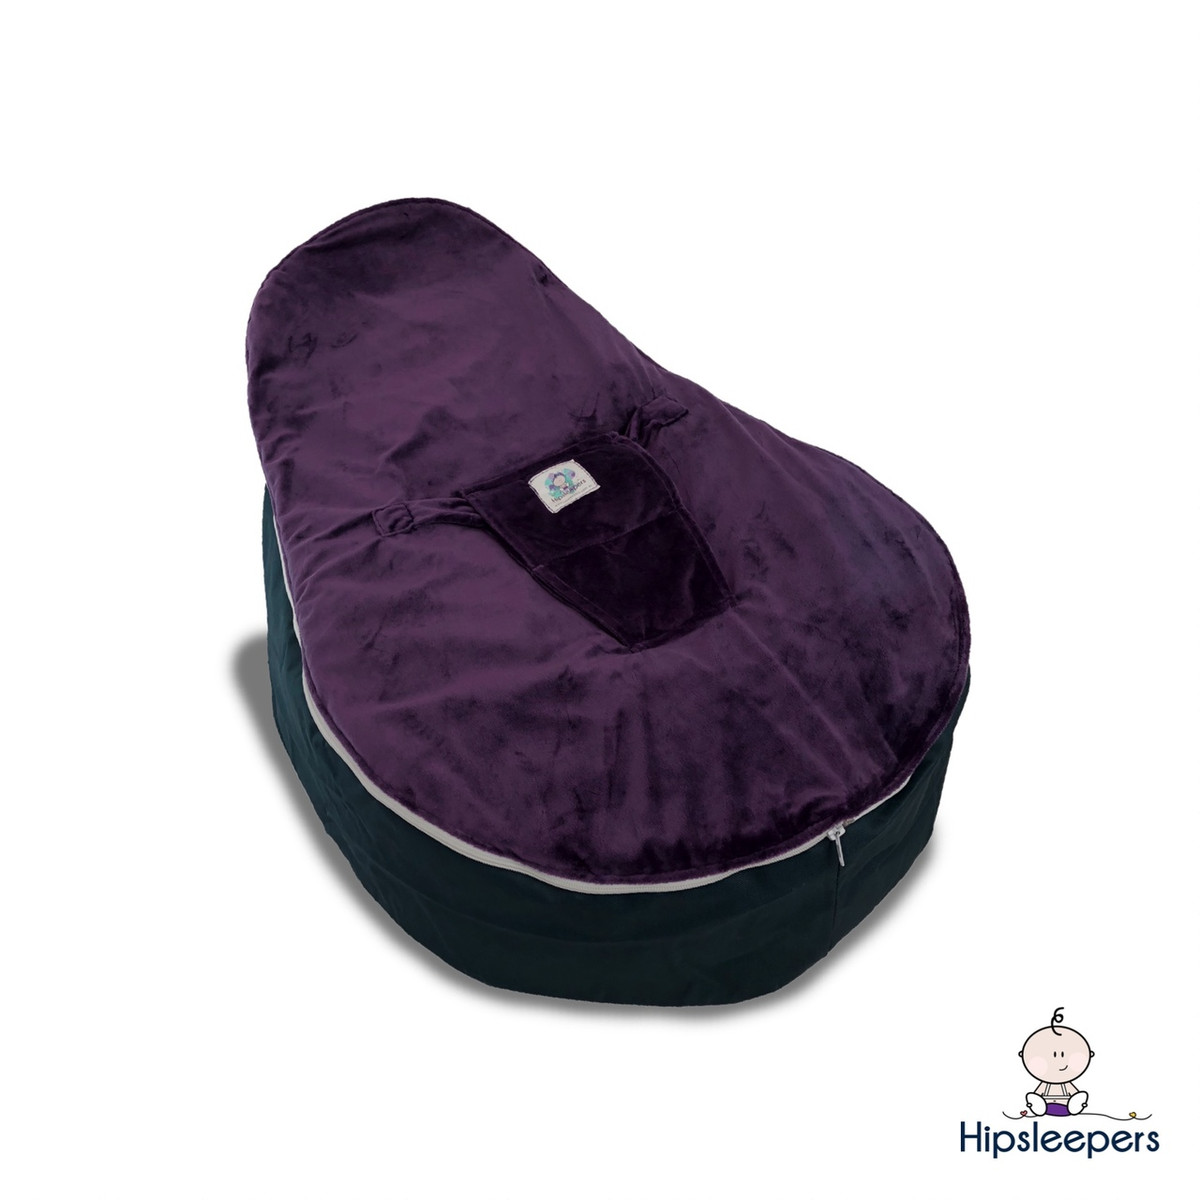 Peachy Supportive Bean Seat Pabps2019 Chair Design Images Pabps2019Com